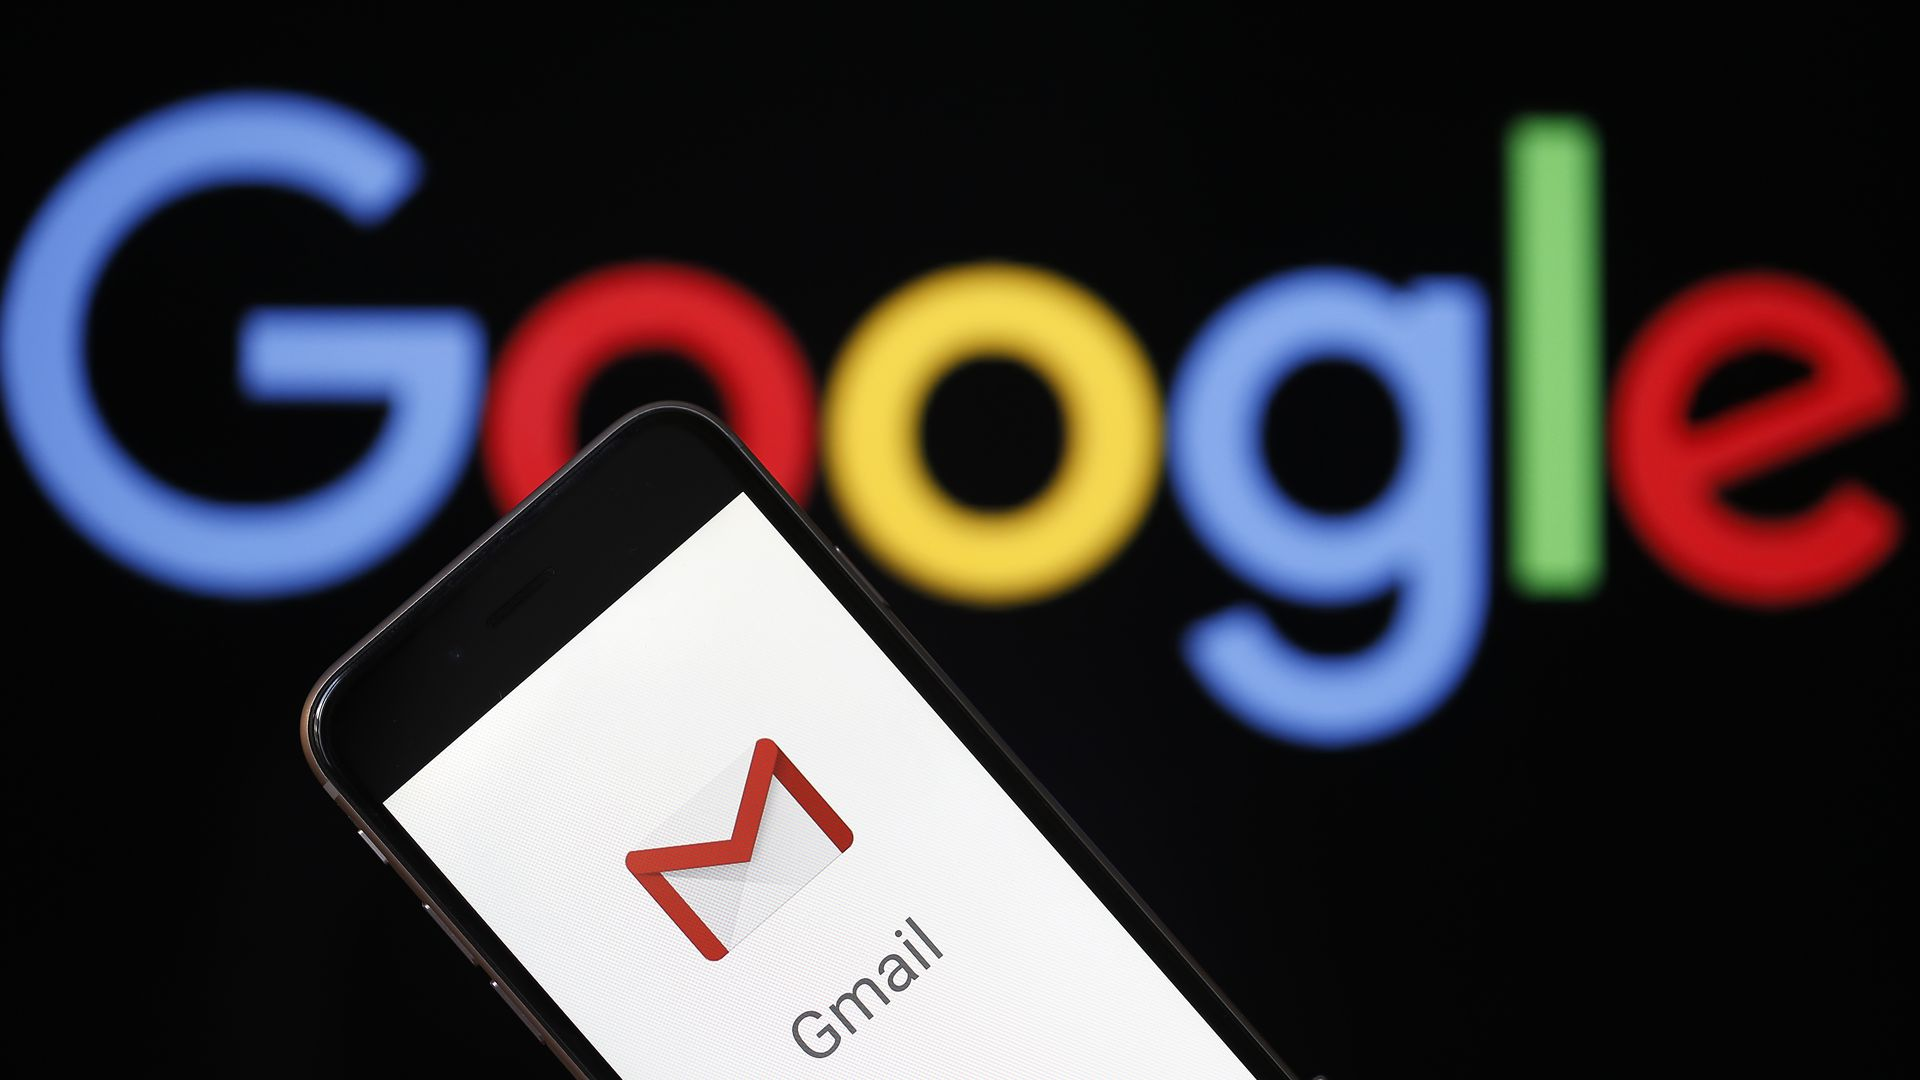 In this image, a phone screen with the Gmail logo is held in front of a large Google logo.